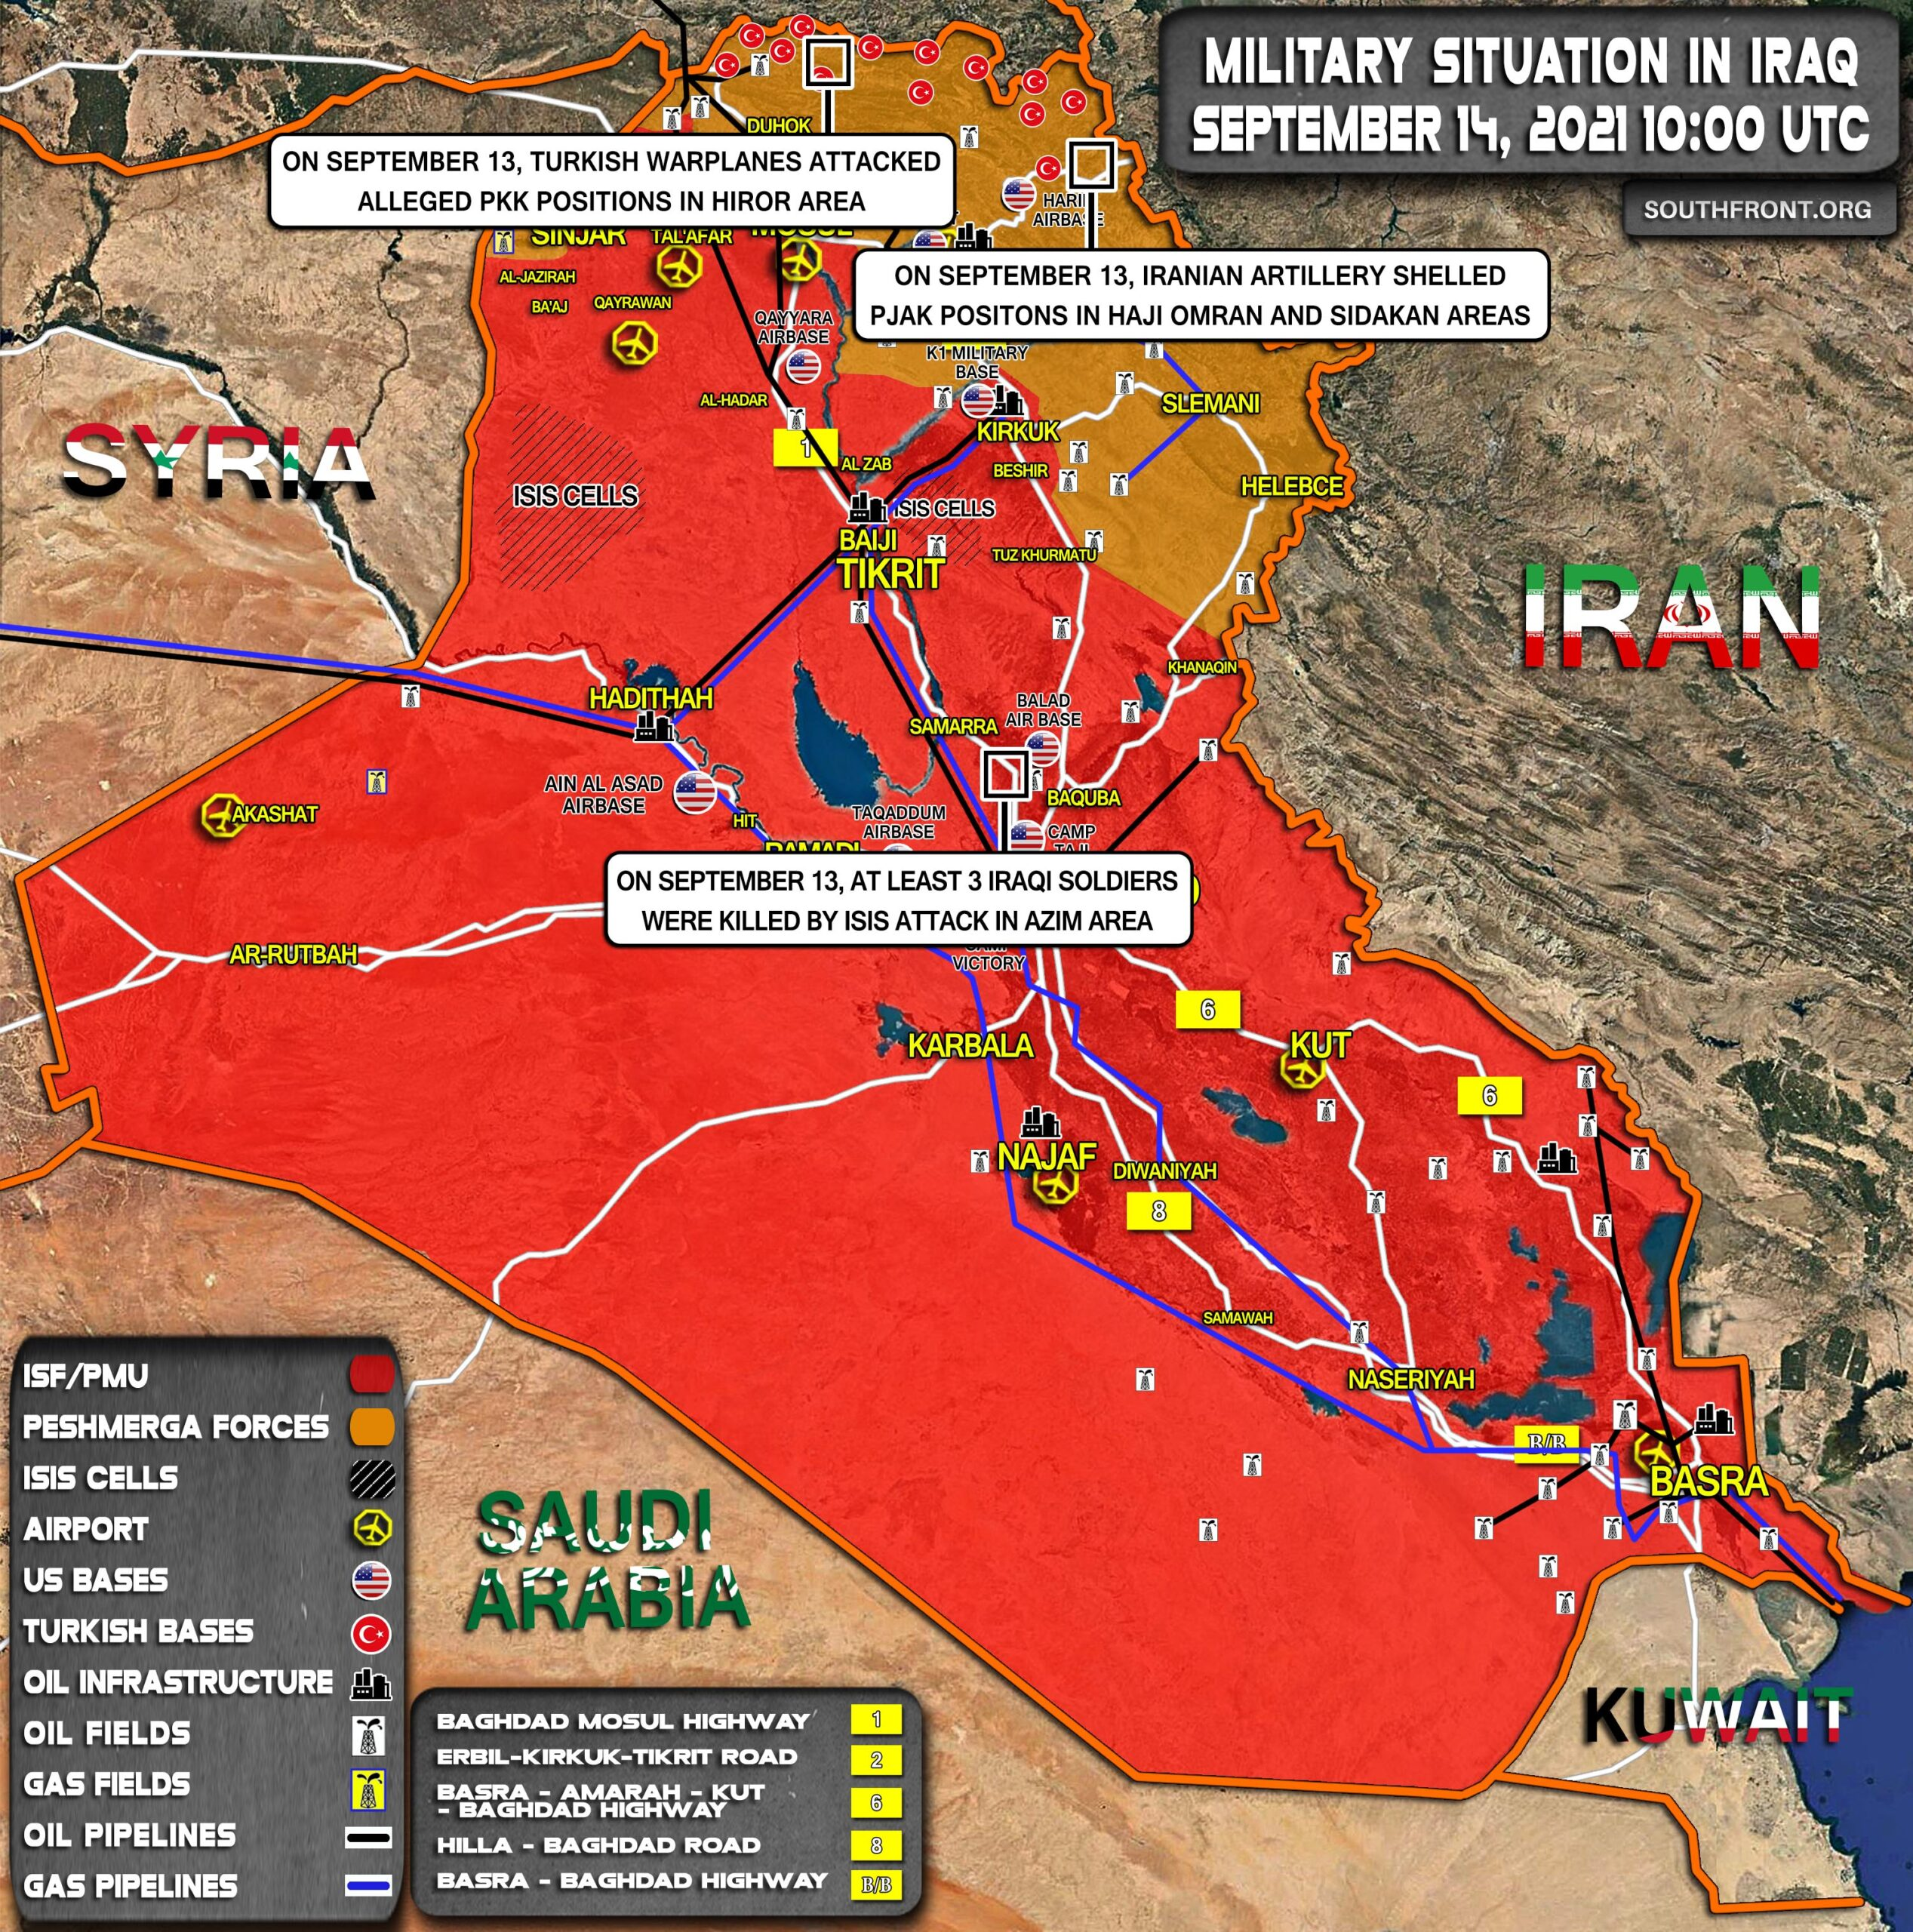 Military Situation In Iraq On September 14, 2021 (Map Update)